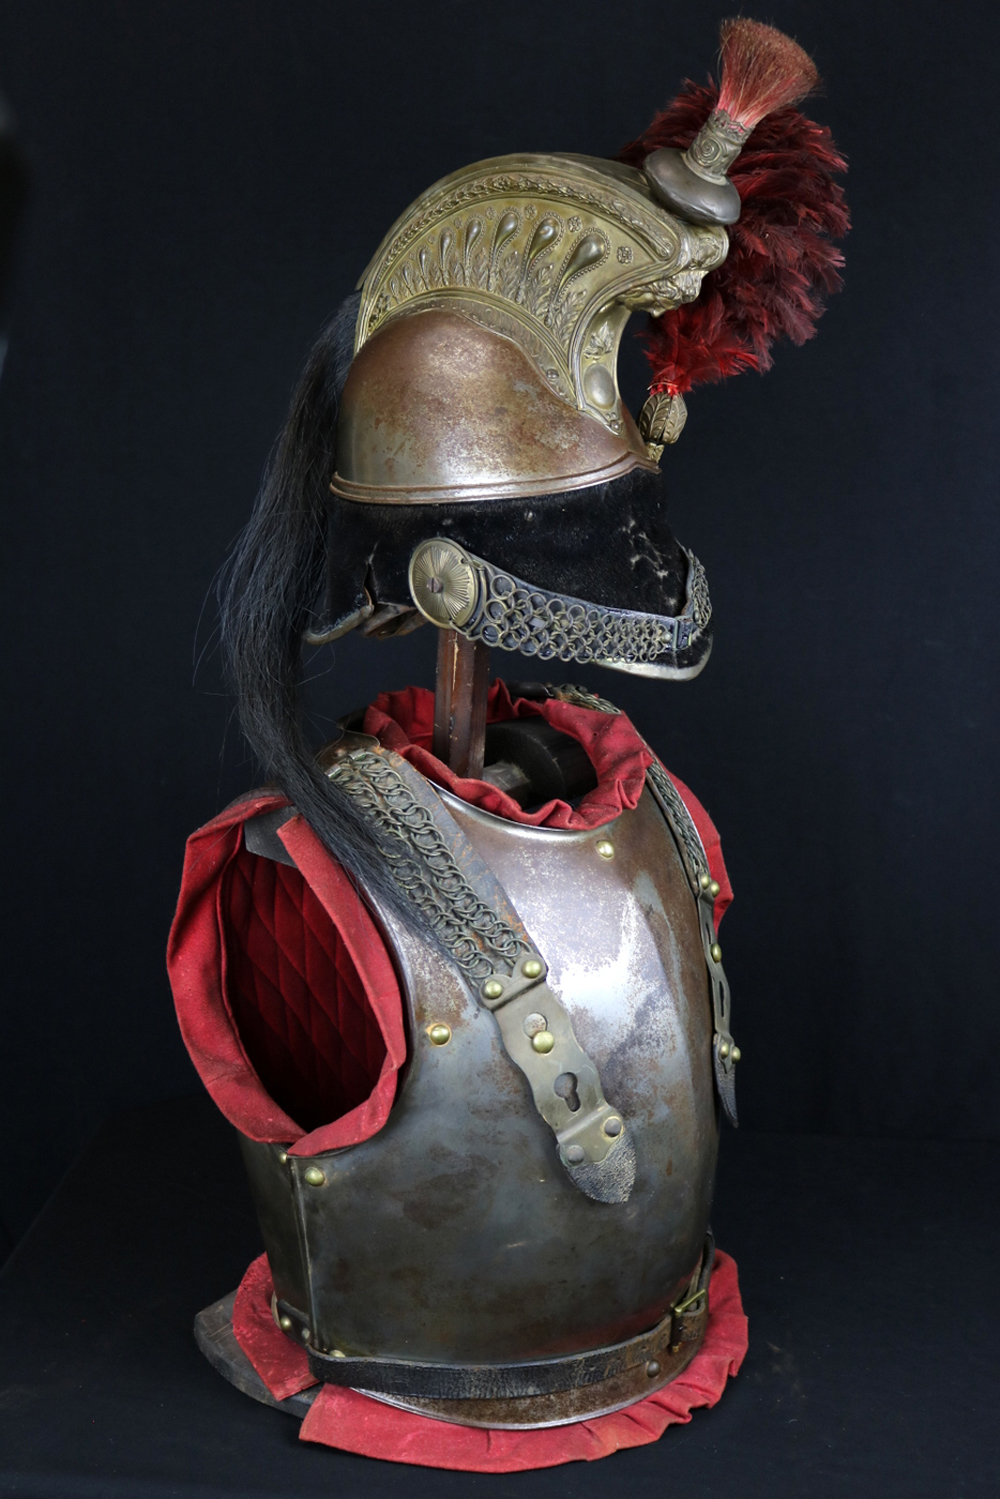 Nice Complete 1829-1851 Dated French Cuirassier's Cuirass & Helmet Armor Se